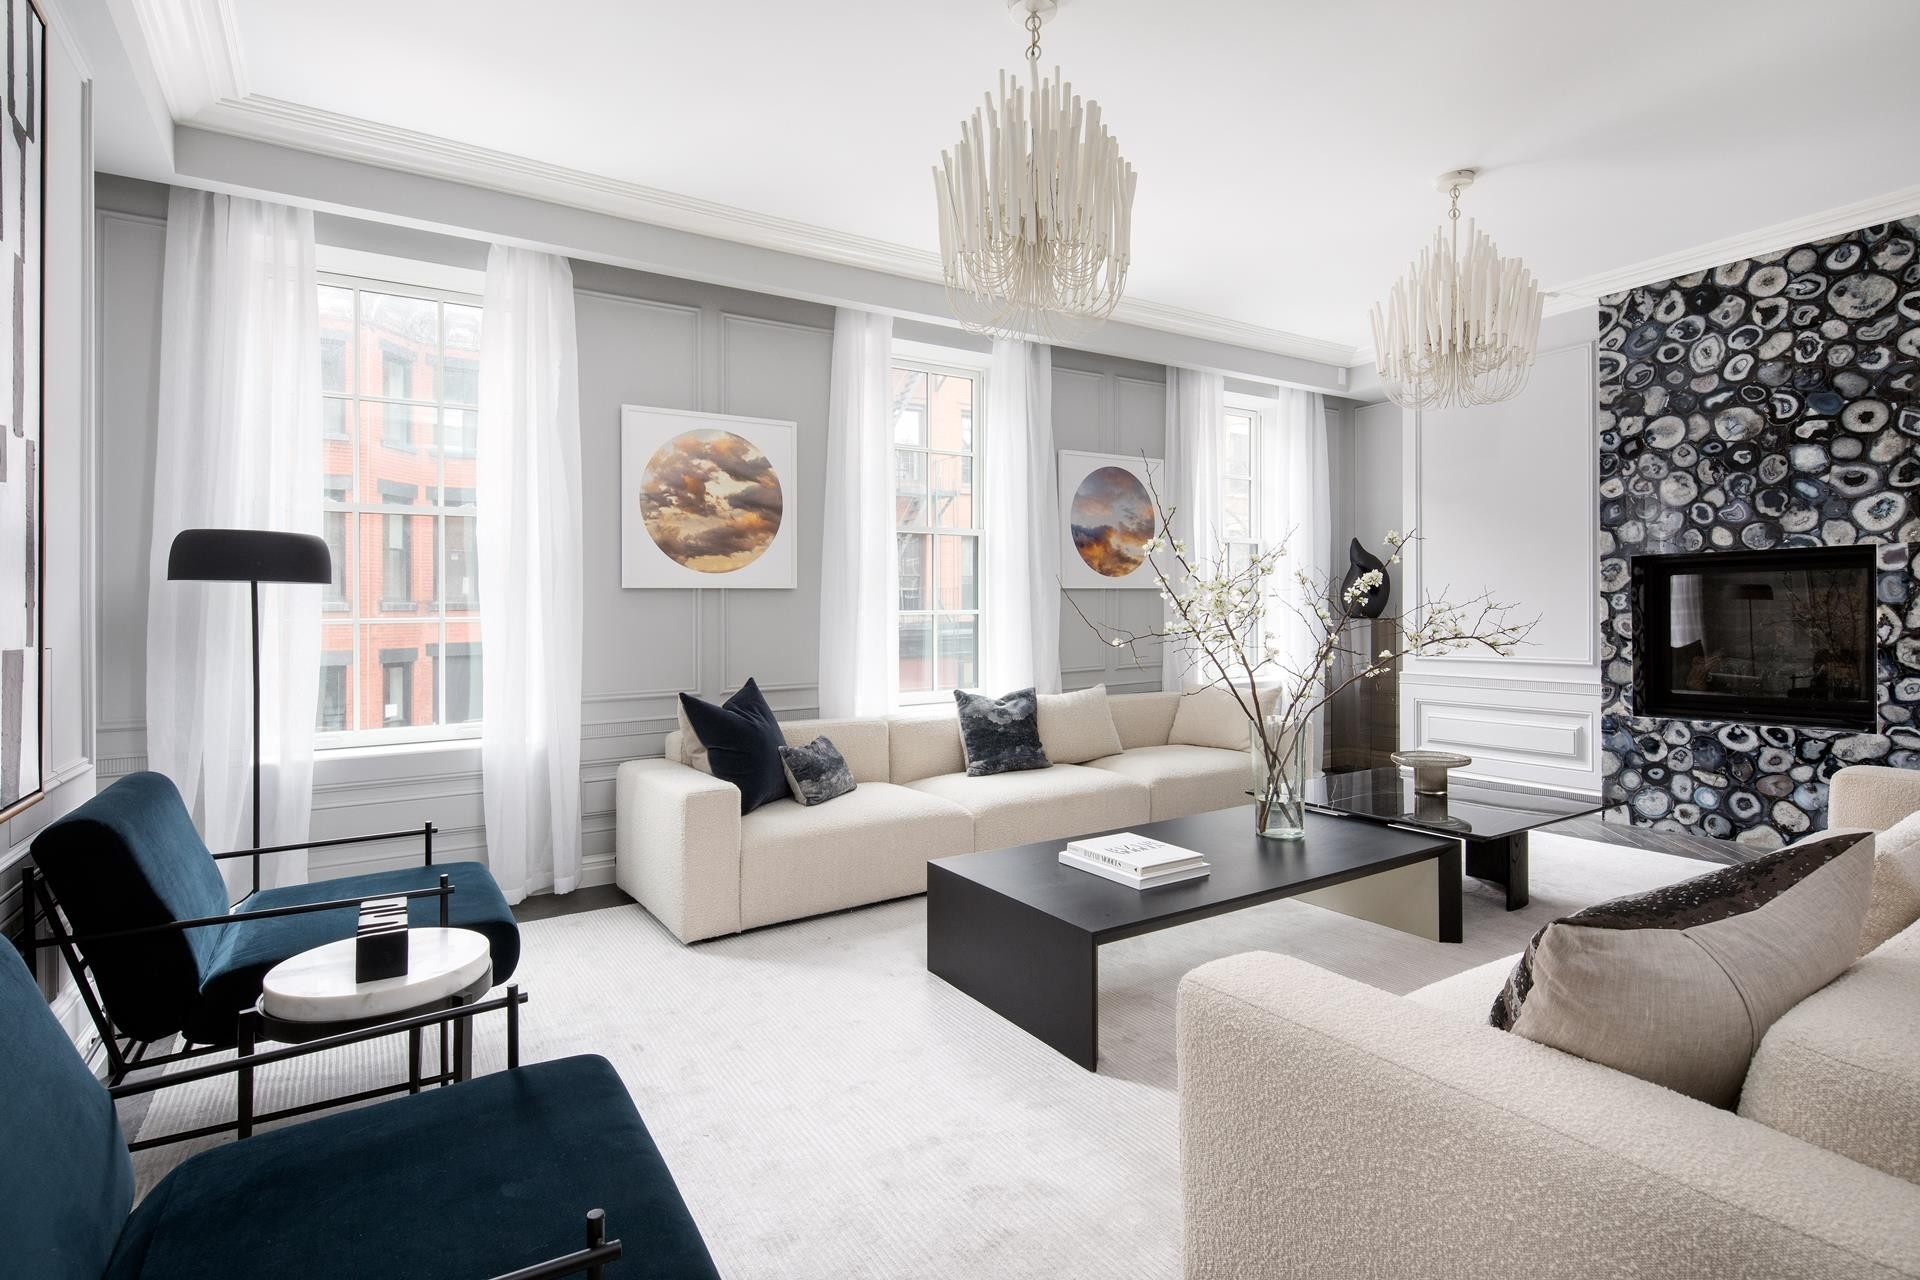 Maison unifamiliale pour l Vente à 50 HICKS ST , TH Brooklyn Heights, Brooklyn, NY 11201